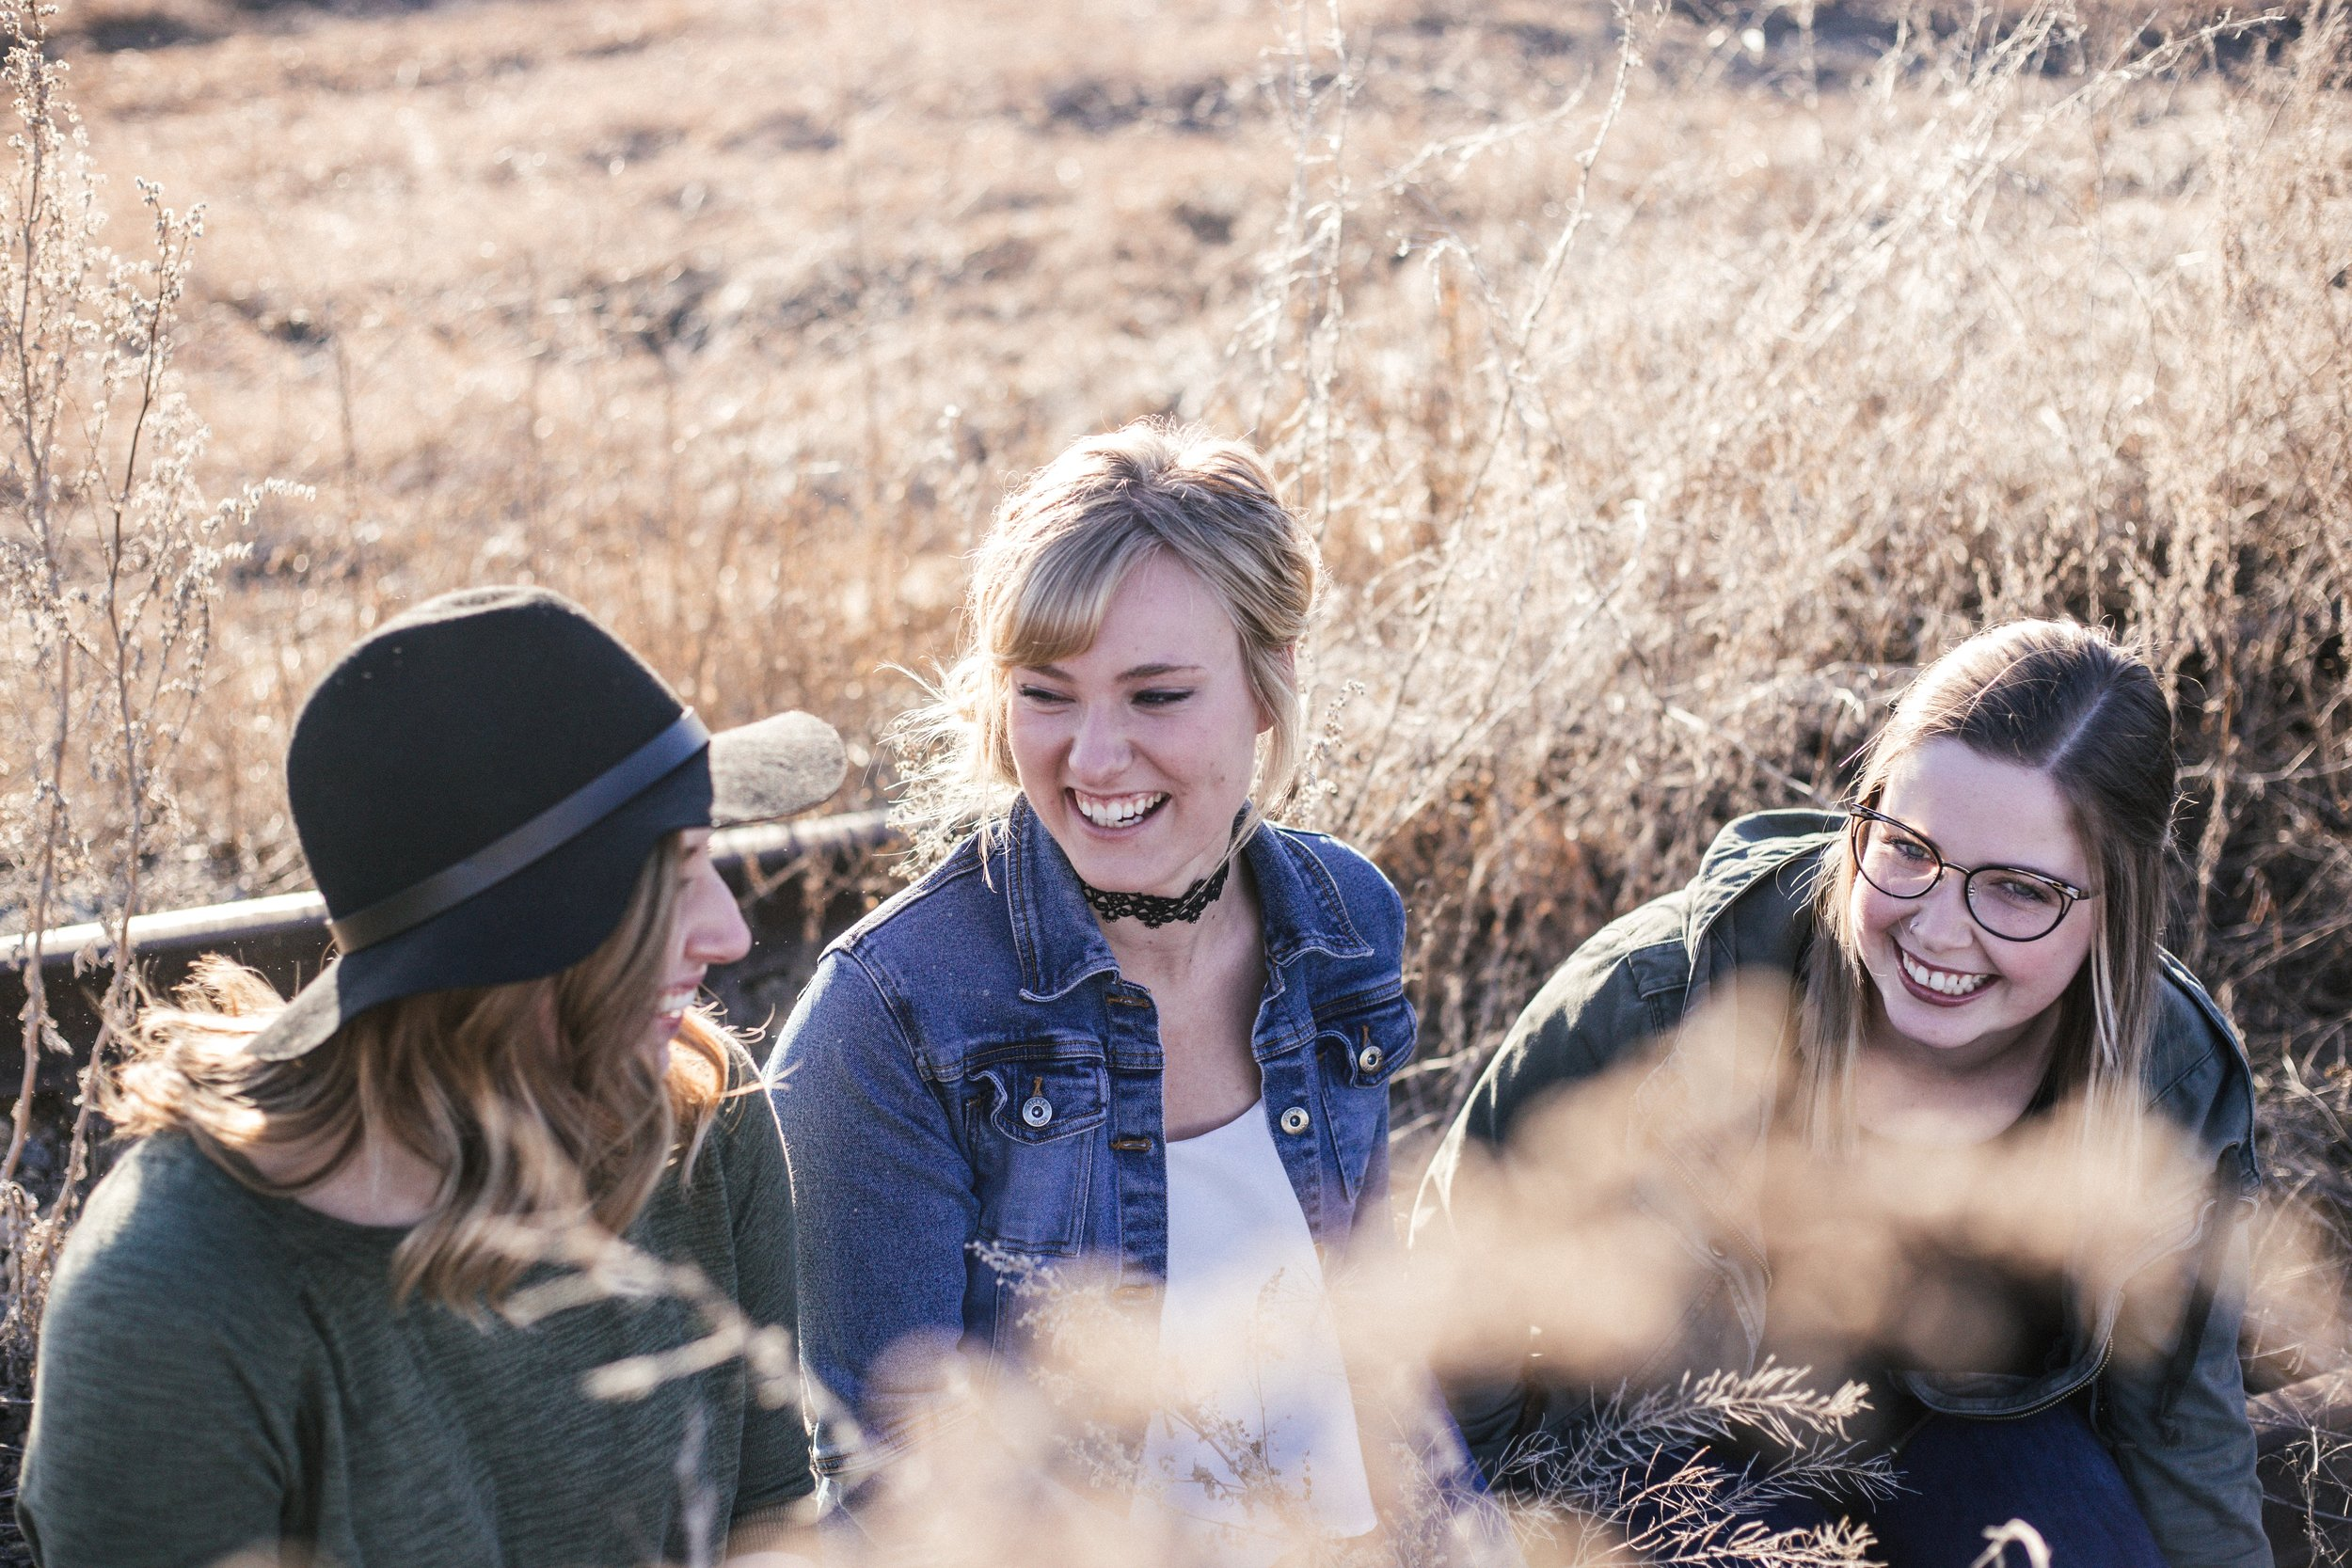 JOIN A SMALL GROUP - Get together with others each week to talk about Sunday's message. Starting 9/29.